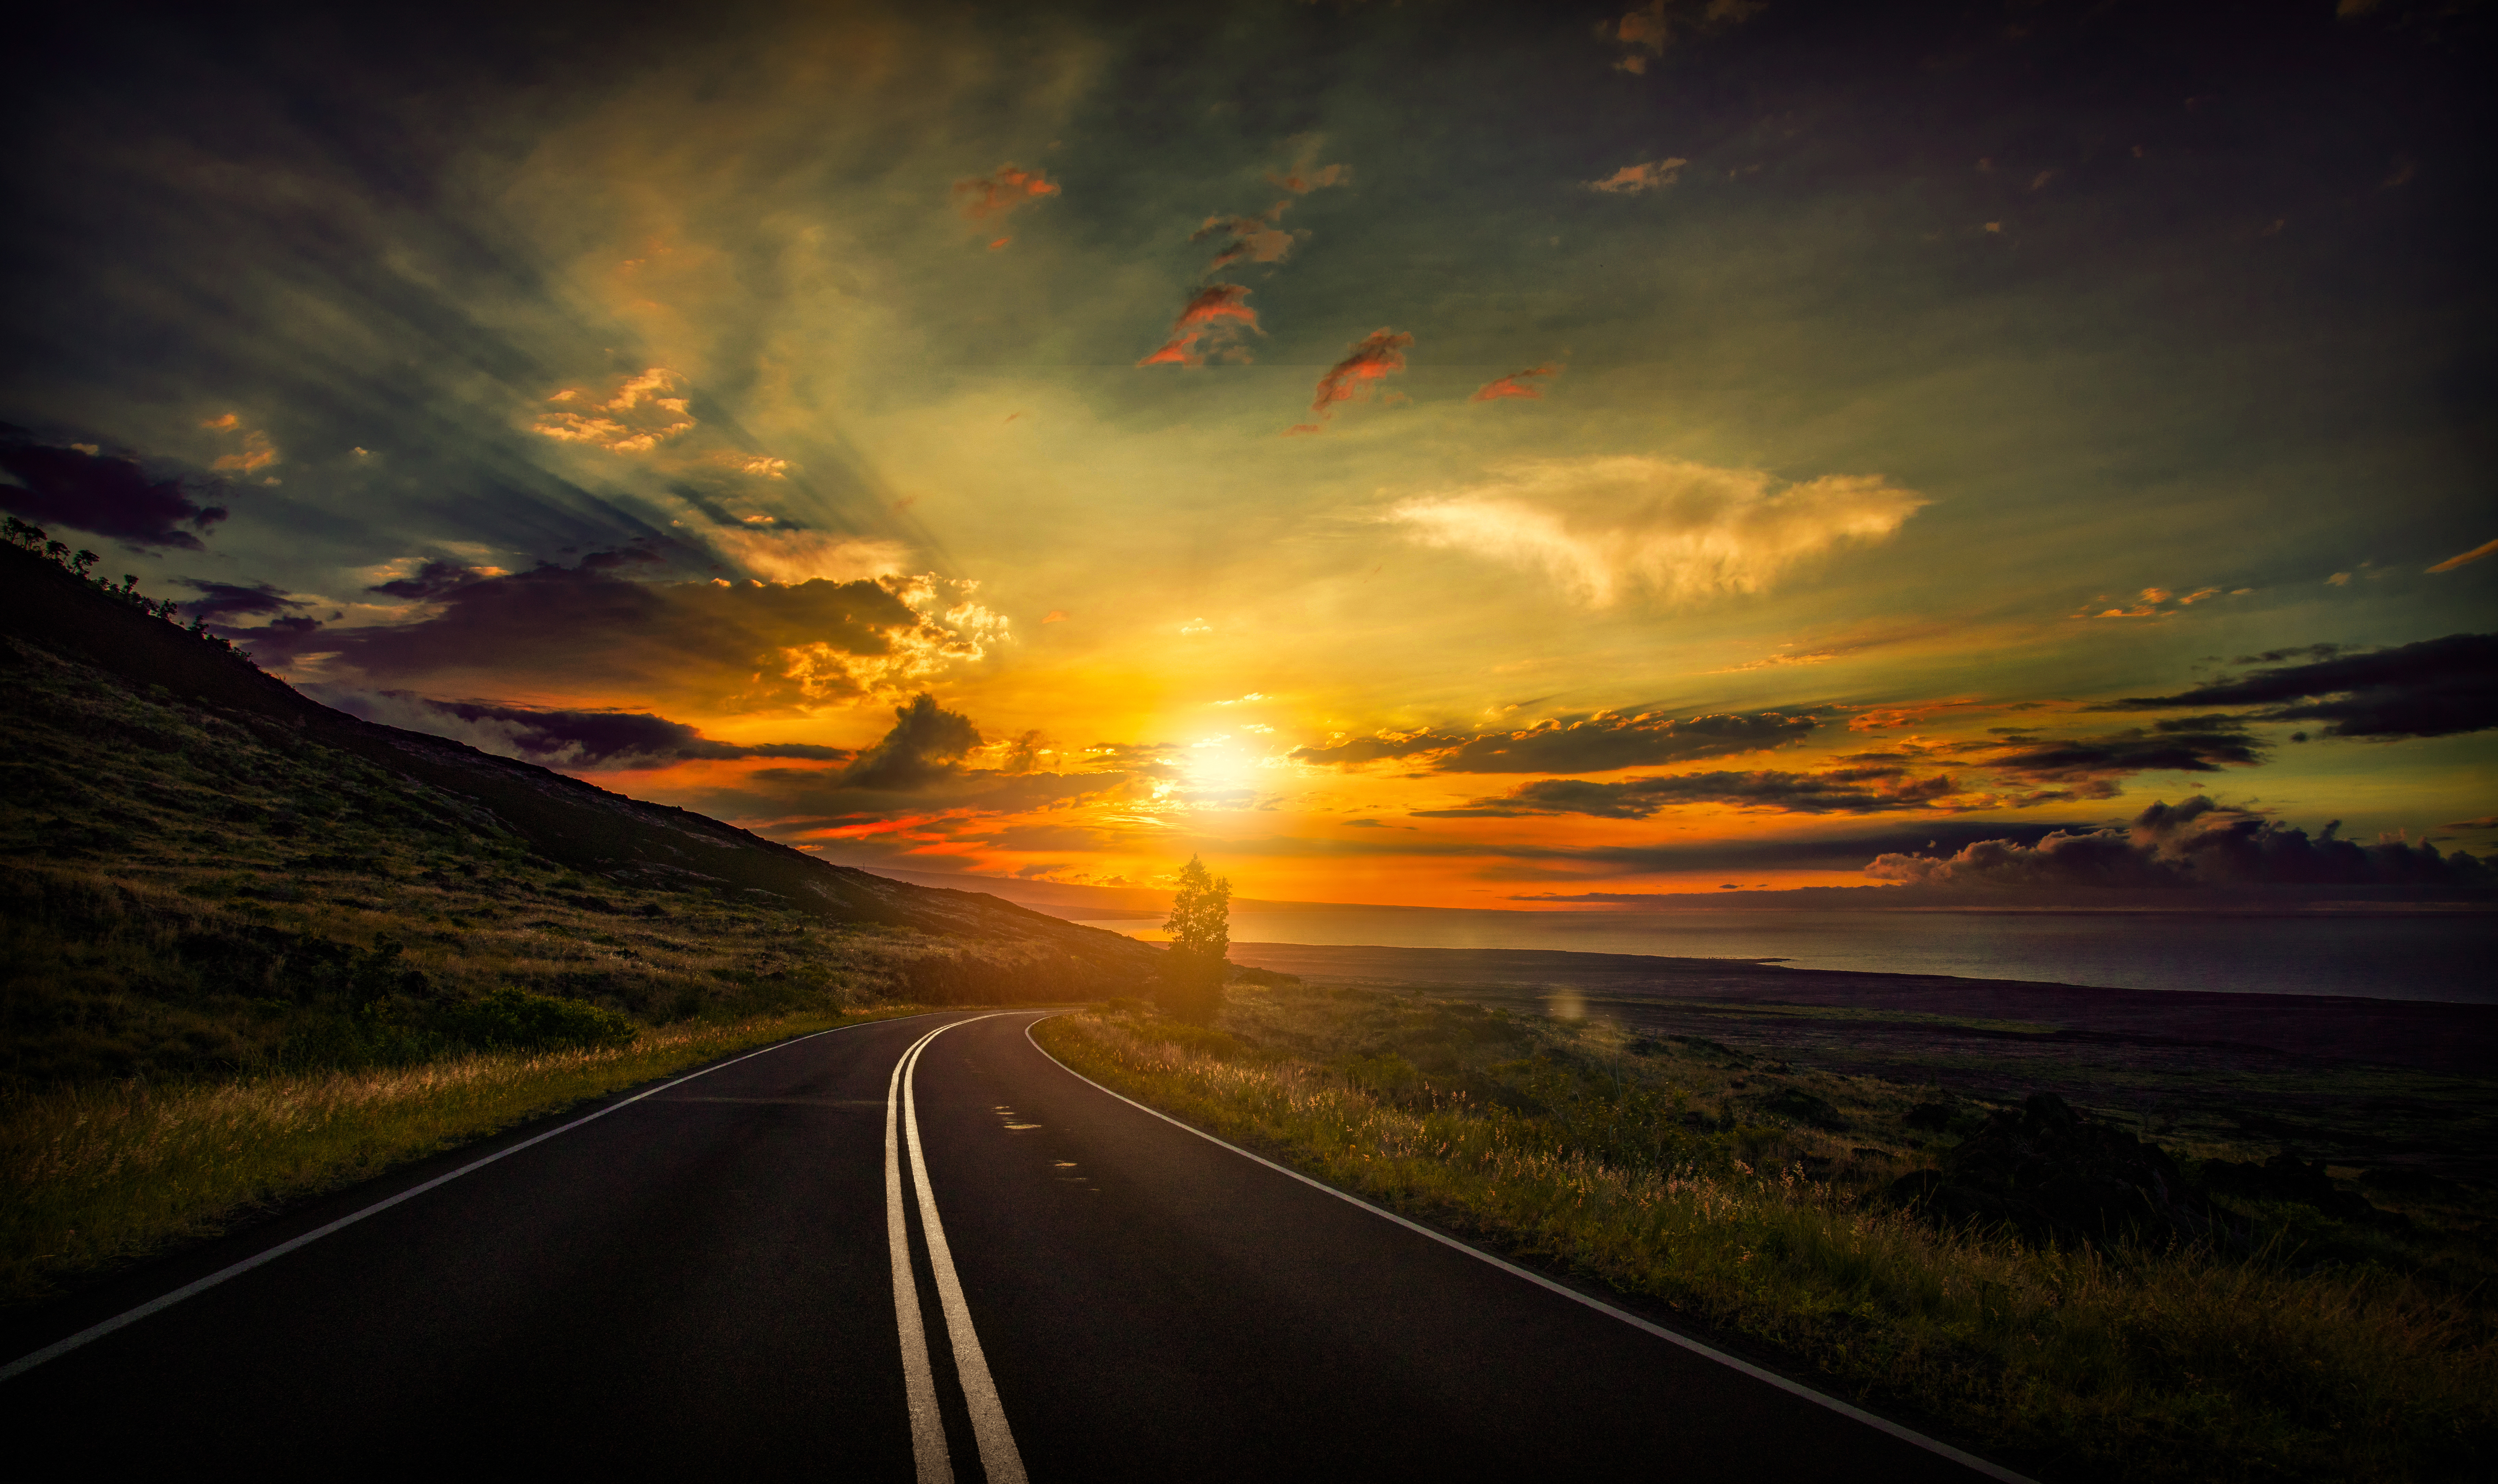 2560x1080 Cool Sunset Road View 8k 2560x1080 Resolution Hd 4k Wallpapers Images Backgrounds Photos And Pictures